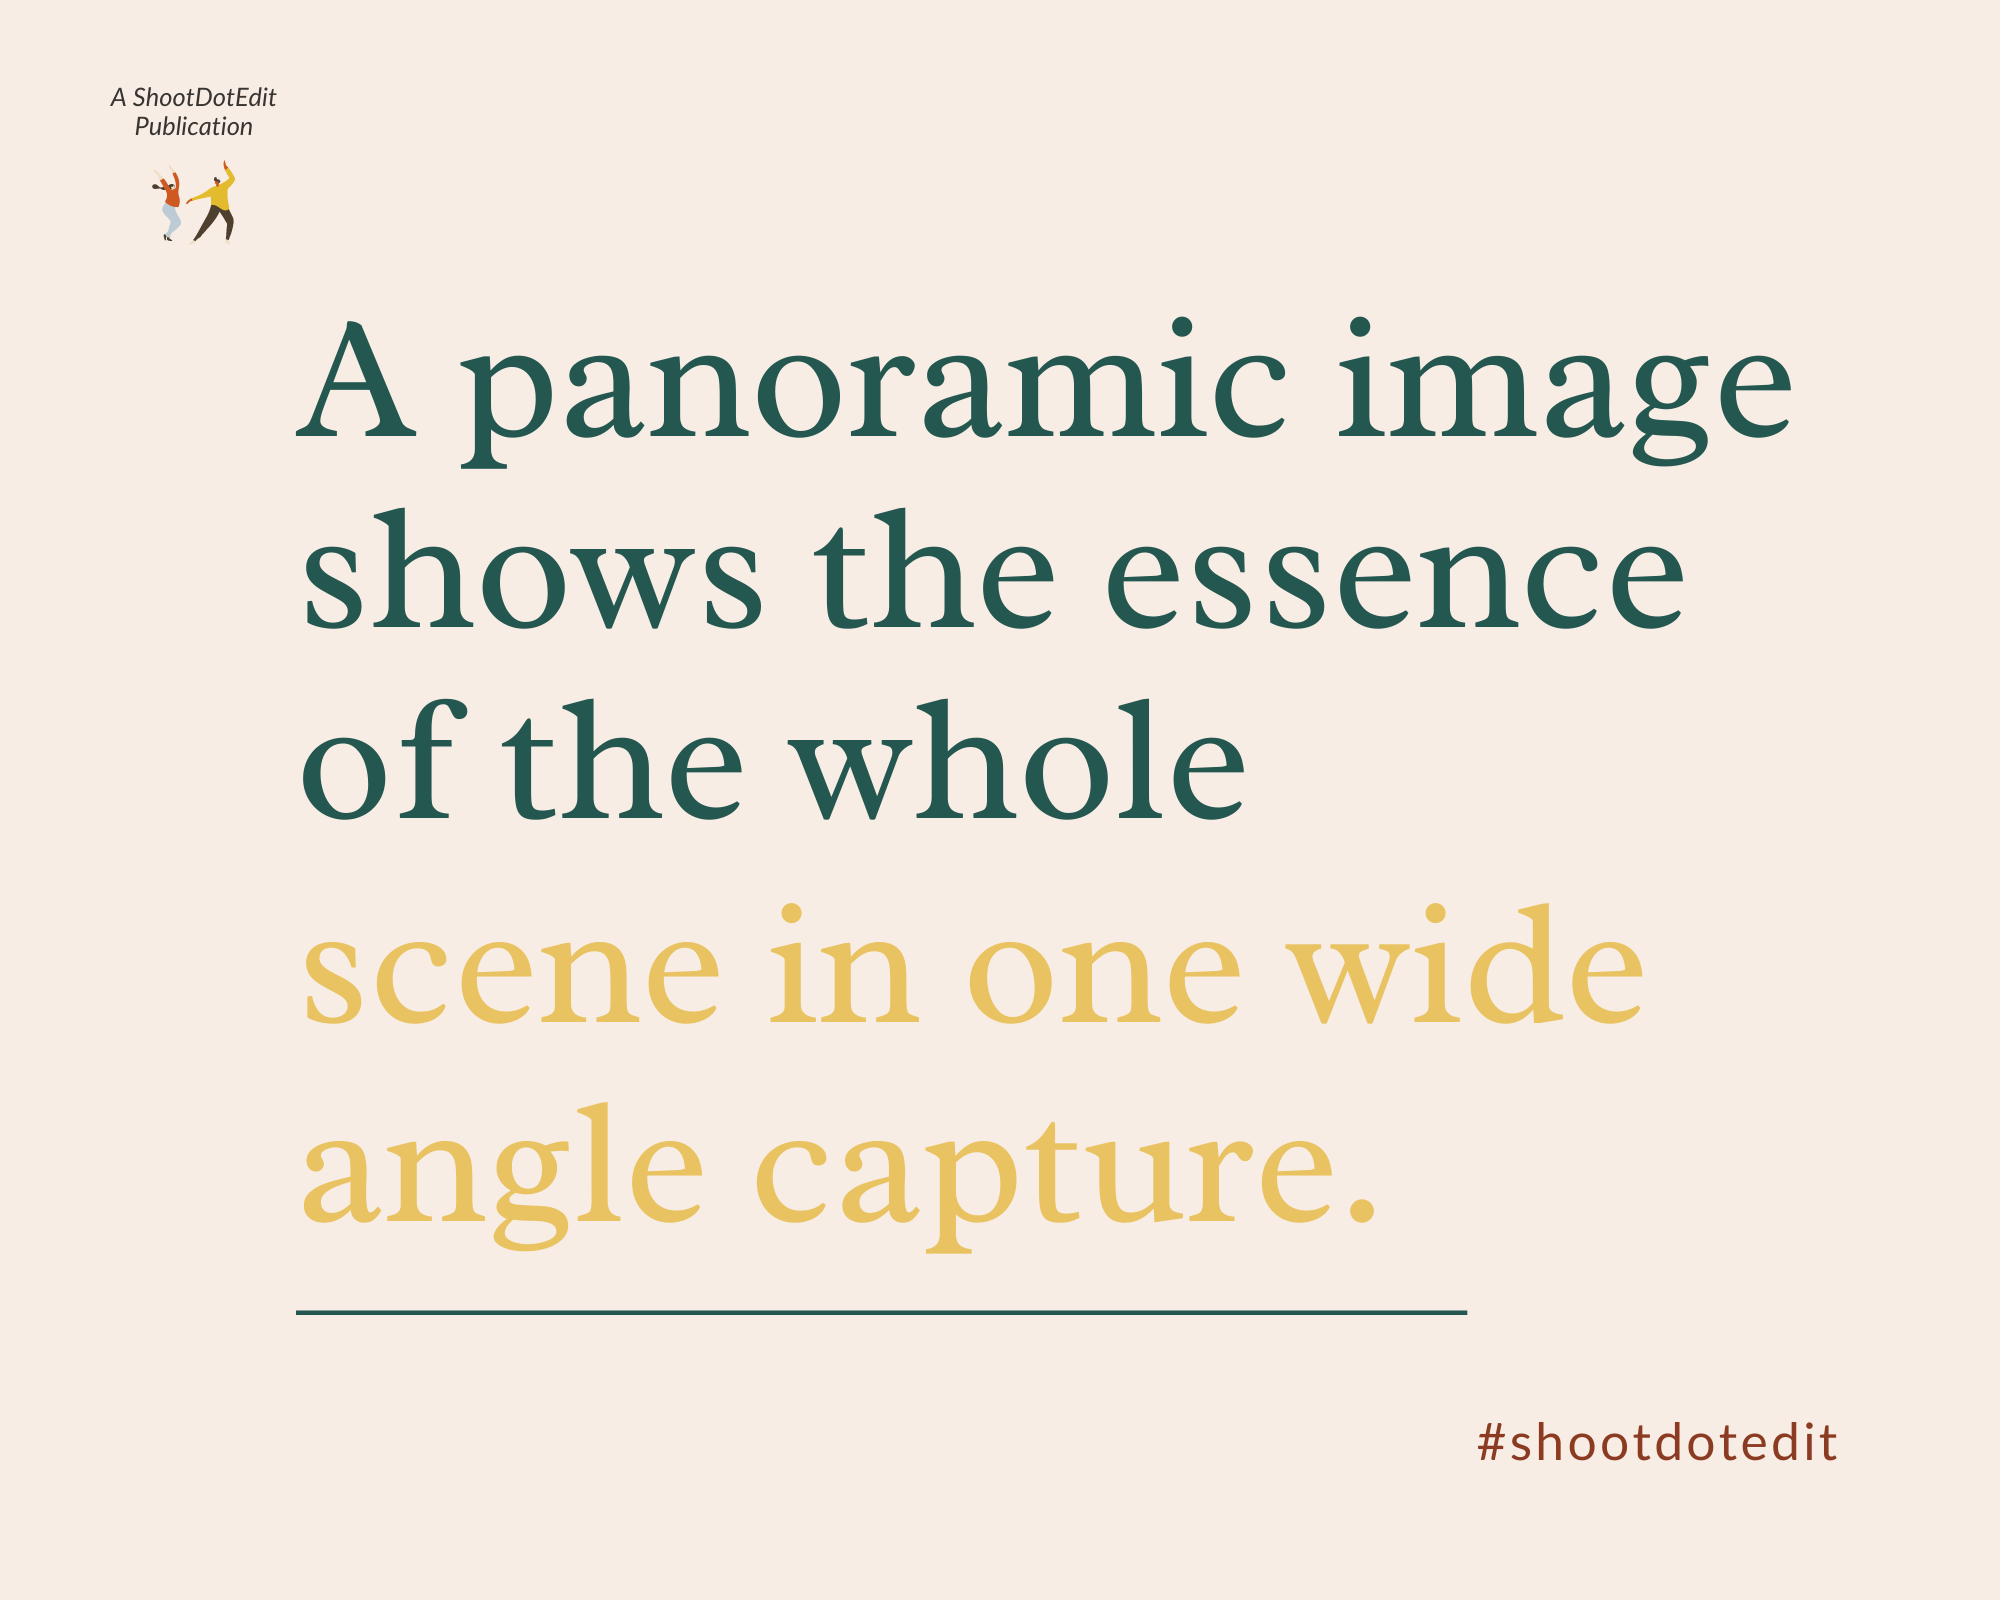 Infographic stating a panoramic image shows the essence of the whole scene in one wide angle capture